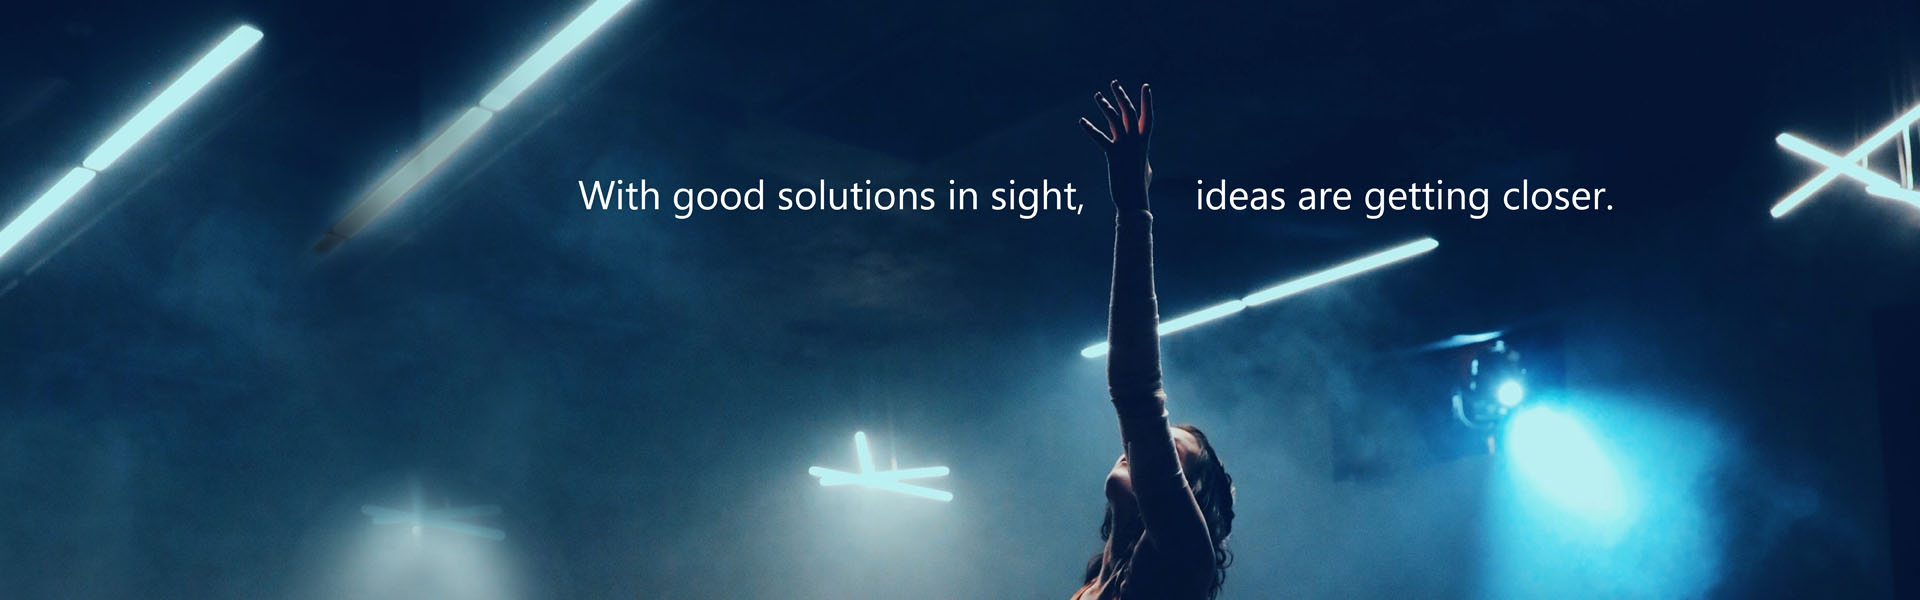 With good solutions in sight, ideas are getting closer.